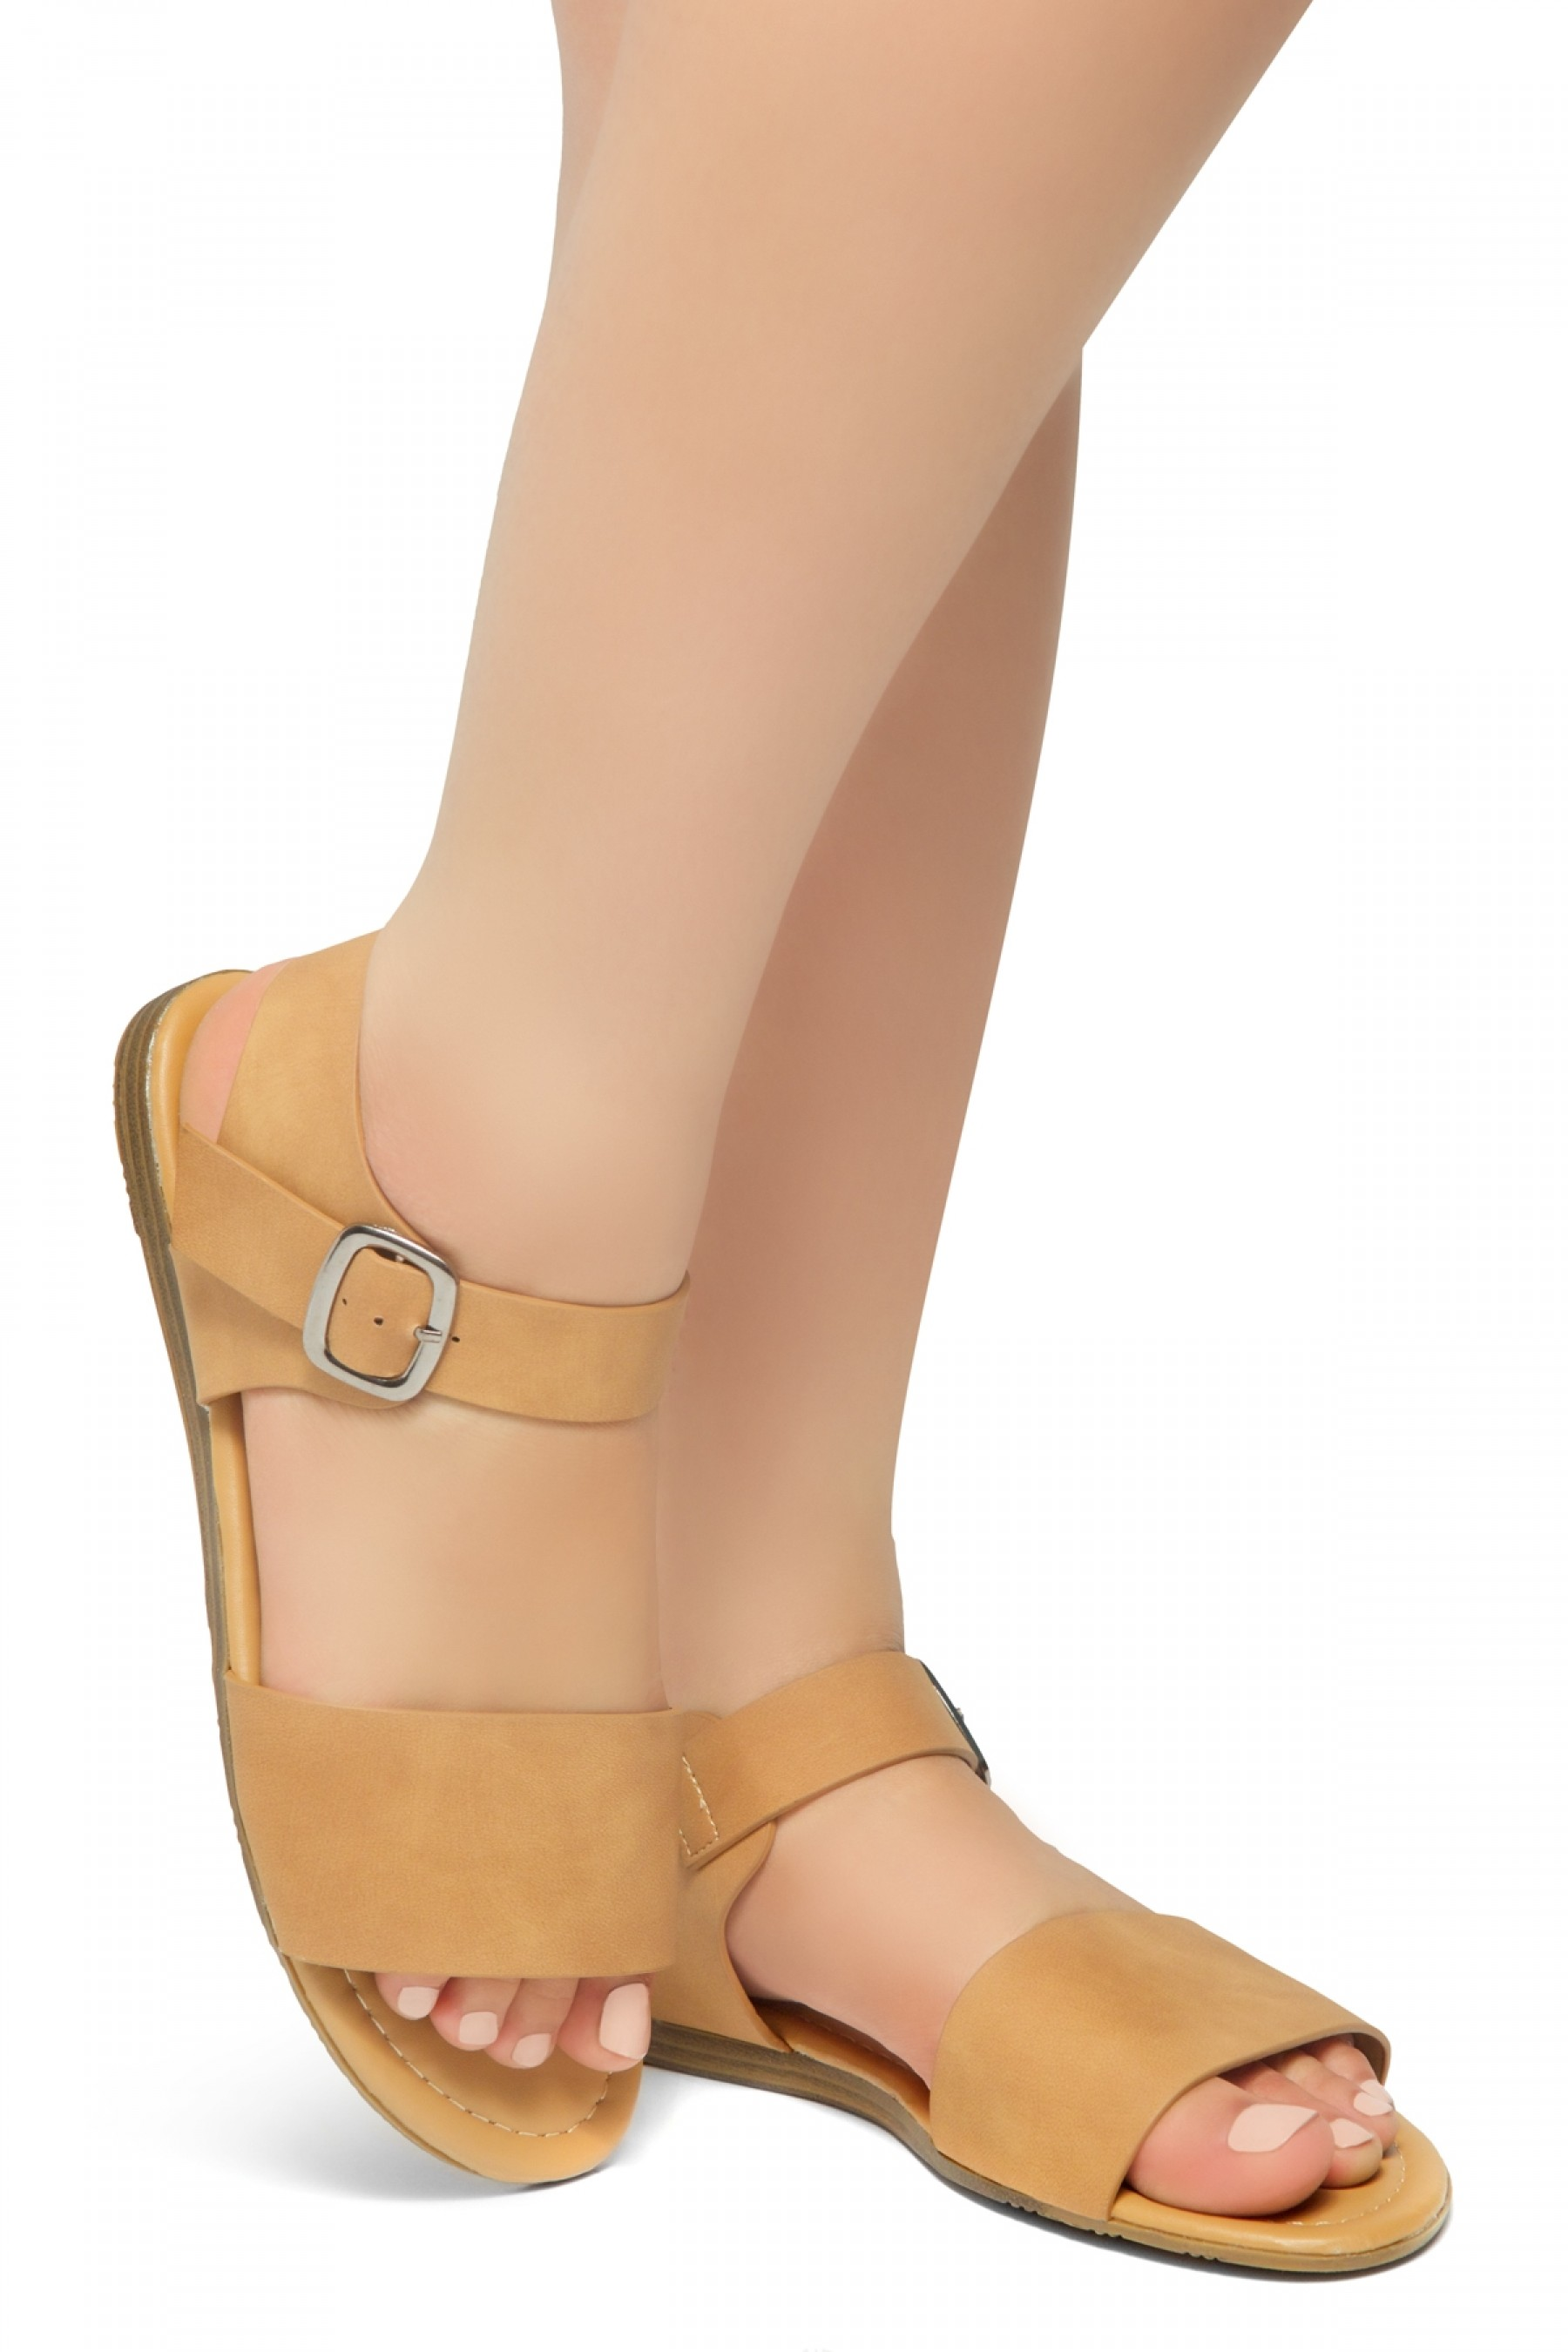 HerStyle Women's Redeem Wide Vamp Strap Wedge Sandals with Square Buckle (Camel)